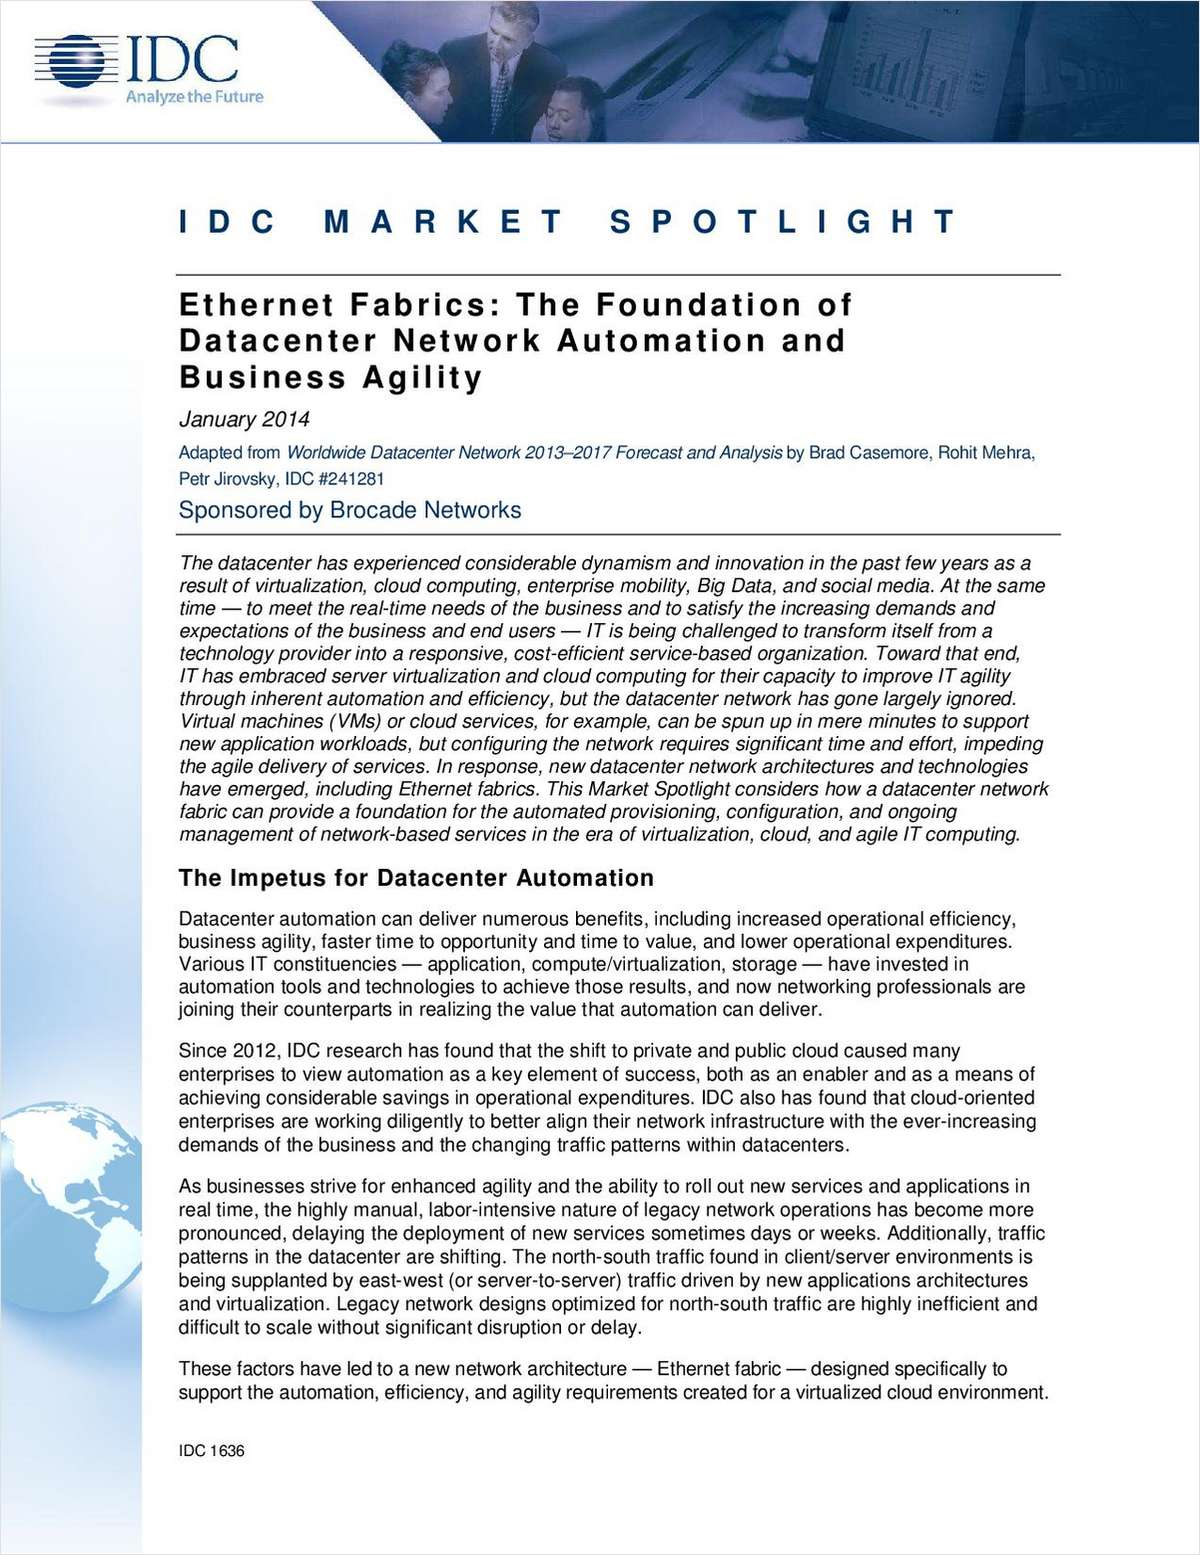 The IDC Market Spotlight on Network Automation and Agility